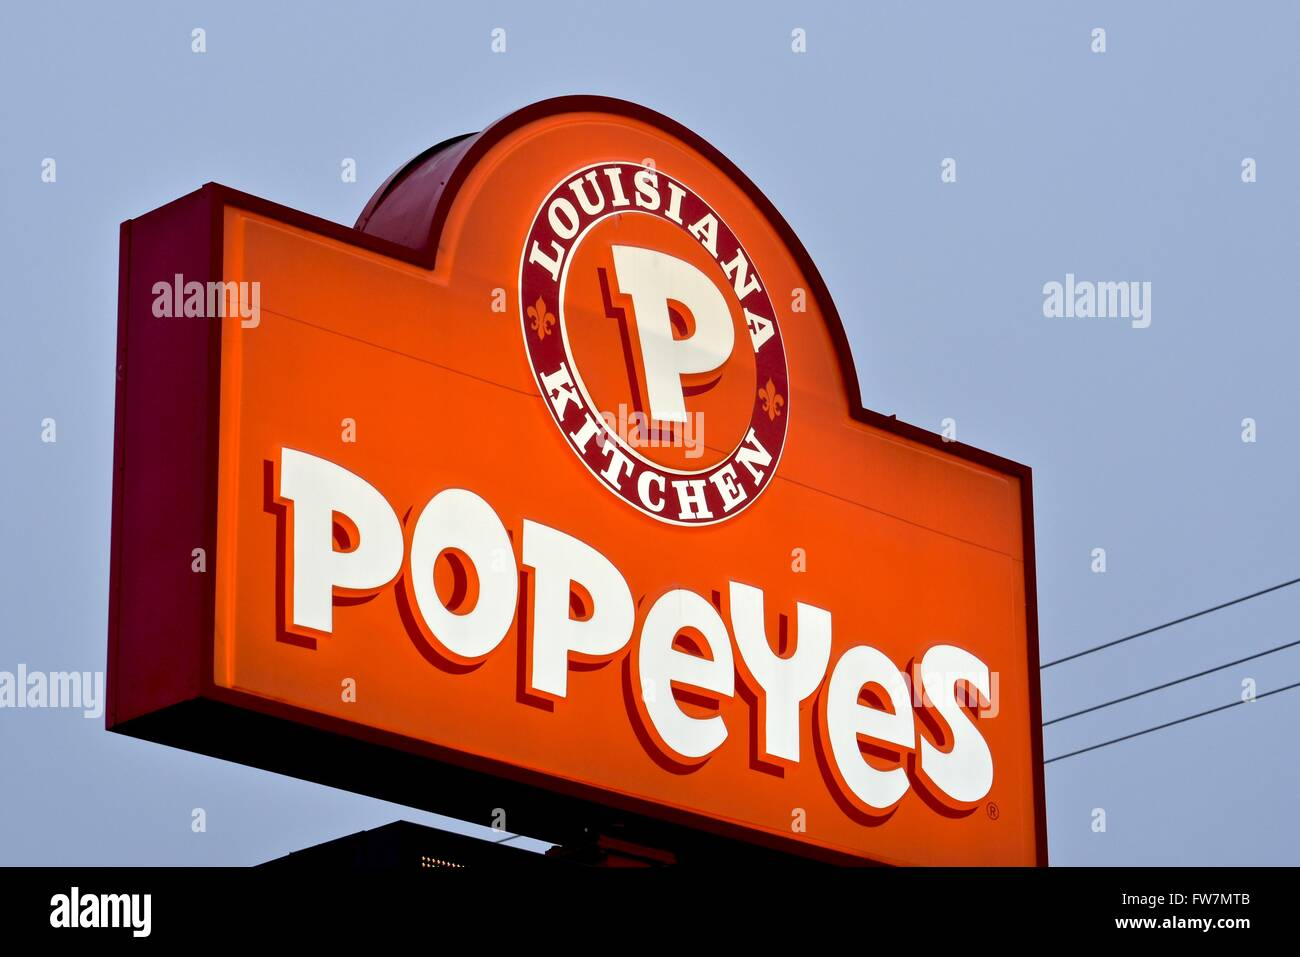 Popeyes Stock Symbol Choice Image Meaning Of Text Symbols